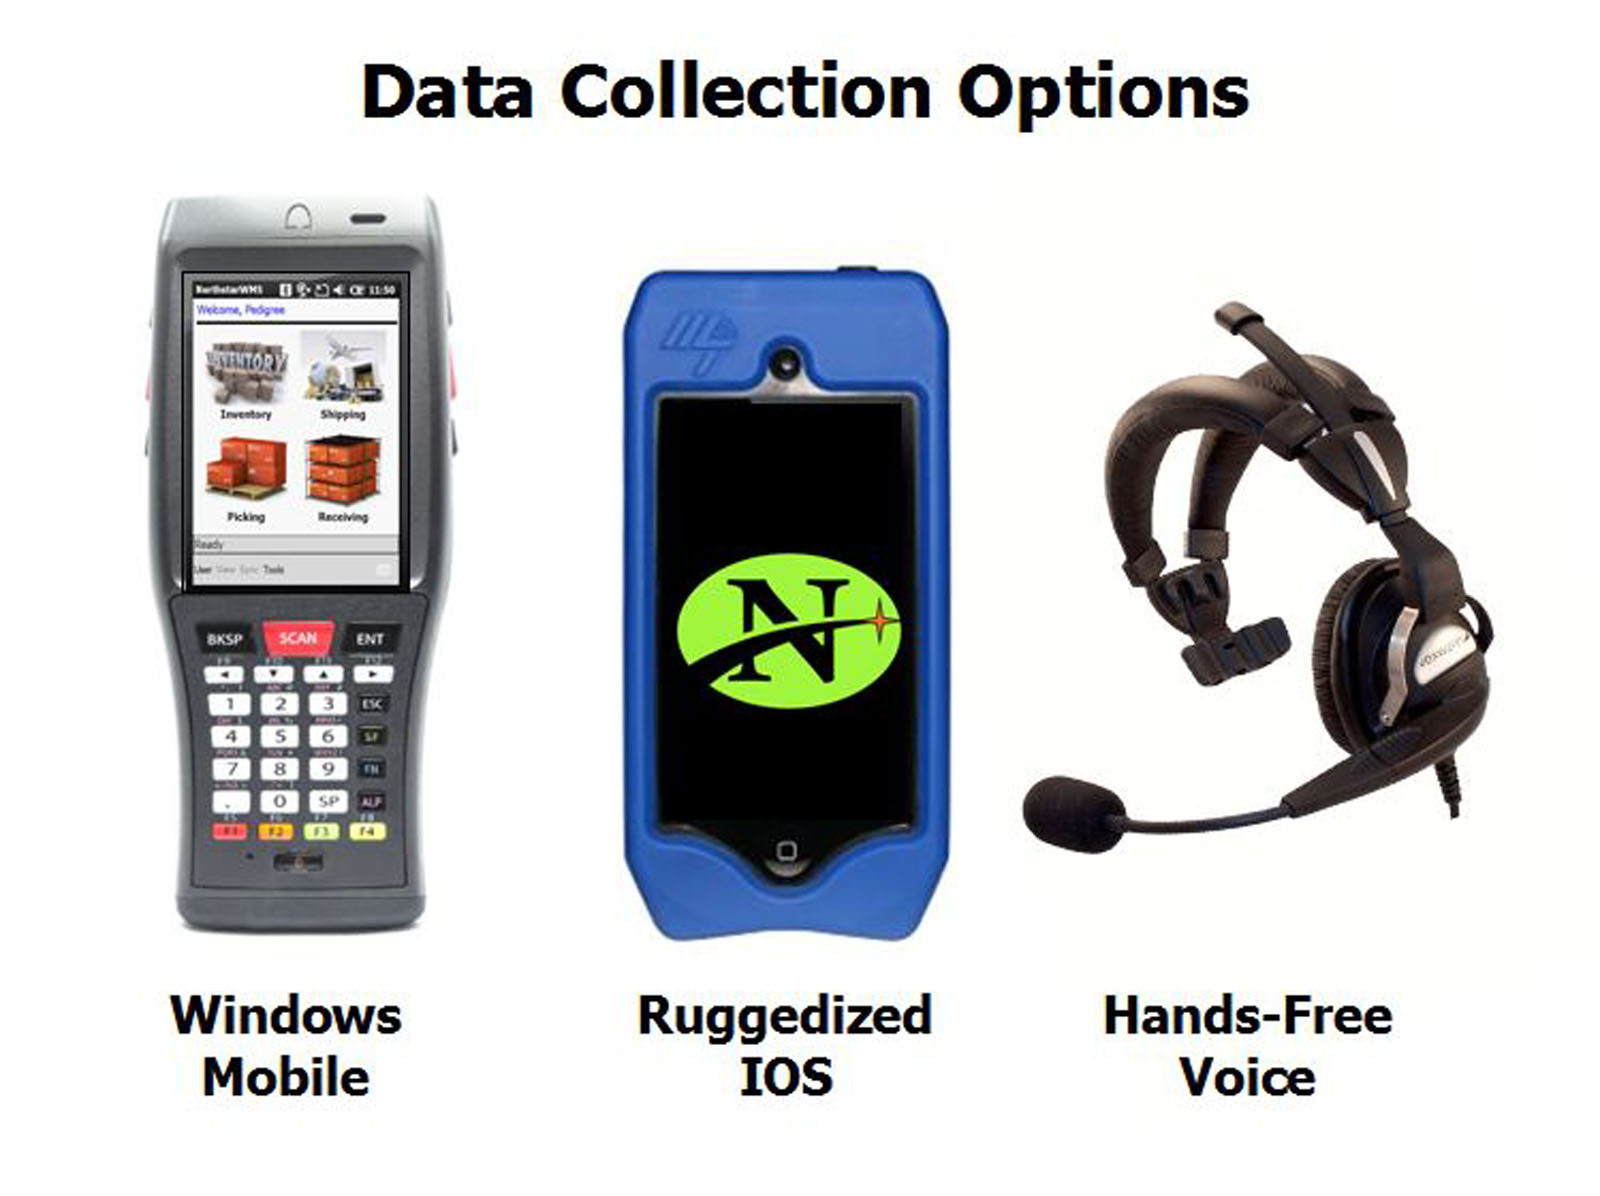 Data collection options